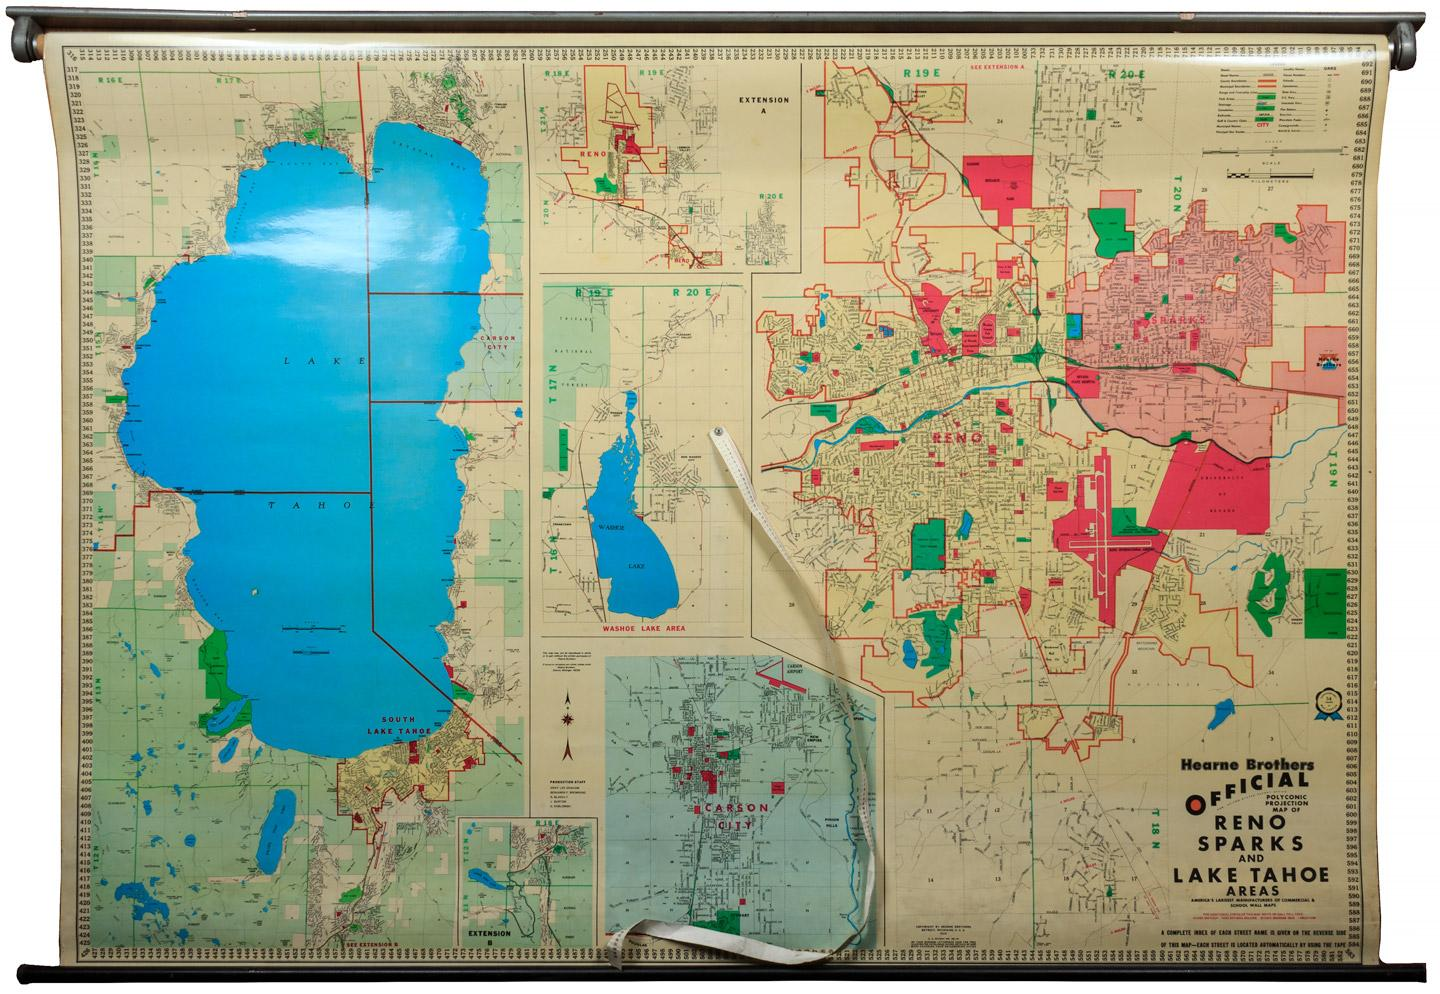 Hearne Brothers Official Polyconic Projection Map Of Reno Sparks - Map of reno and lake tahoe